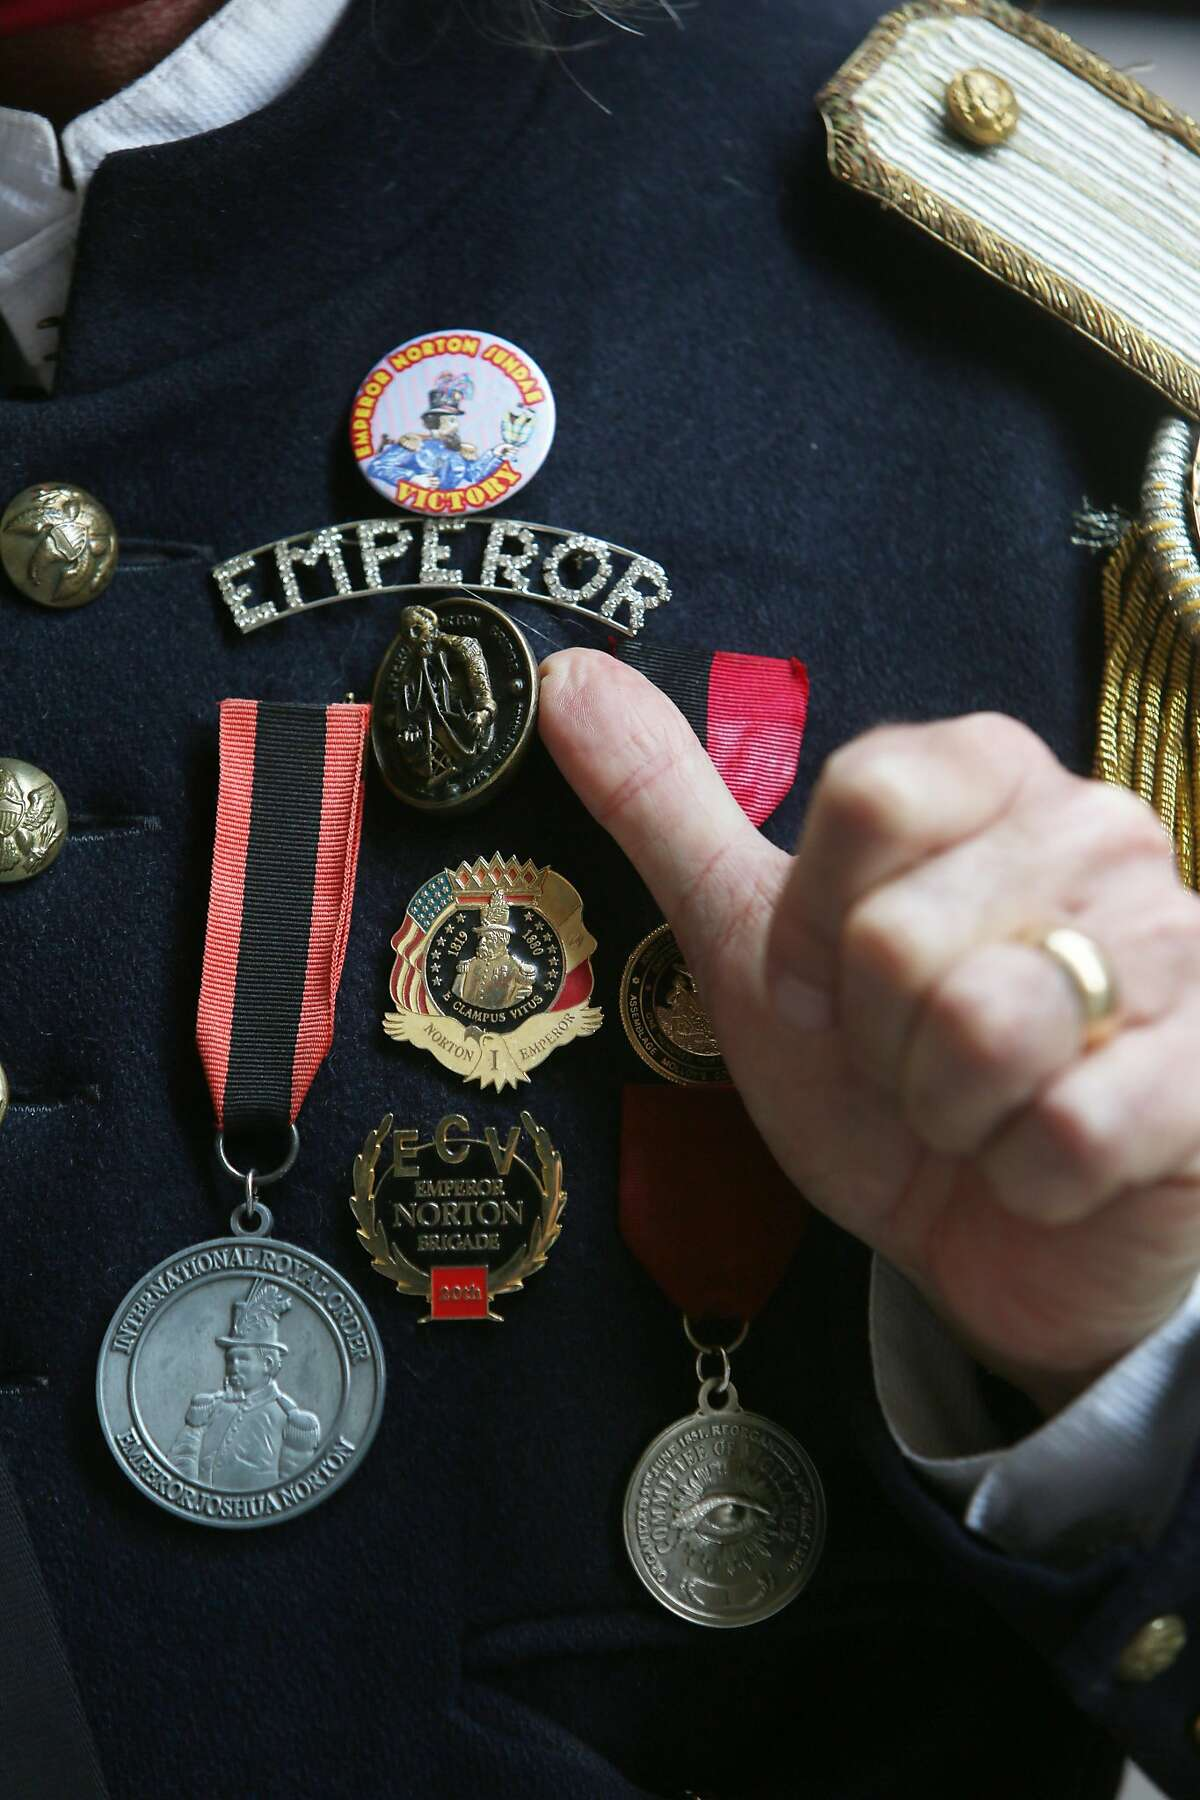 Joseph Amster as Emperor Norton wears a pin that says Emperor along with medals on his jacket on Wednesday, September 30, 2020 in San Francisco, Calif.